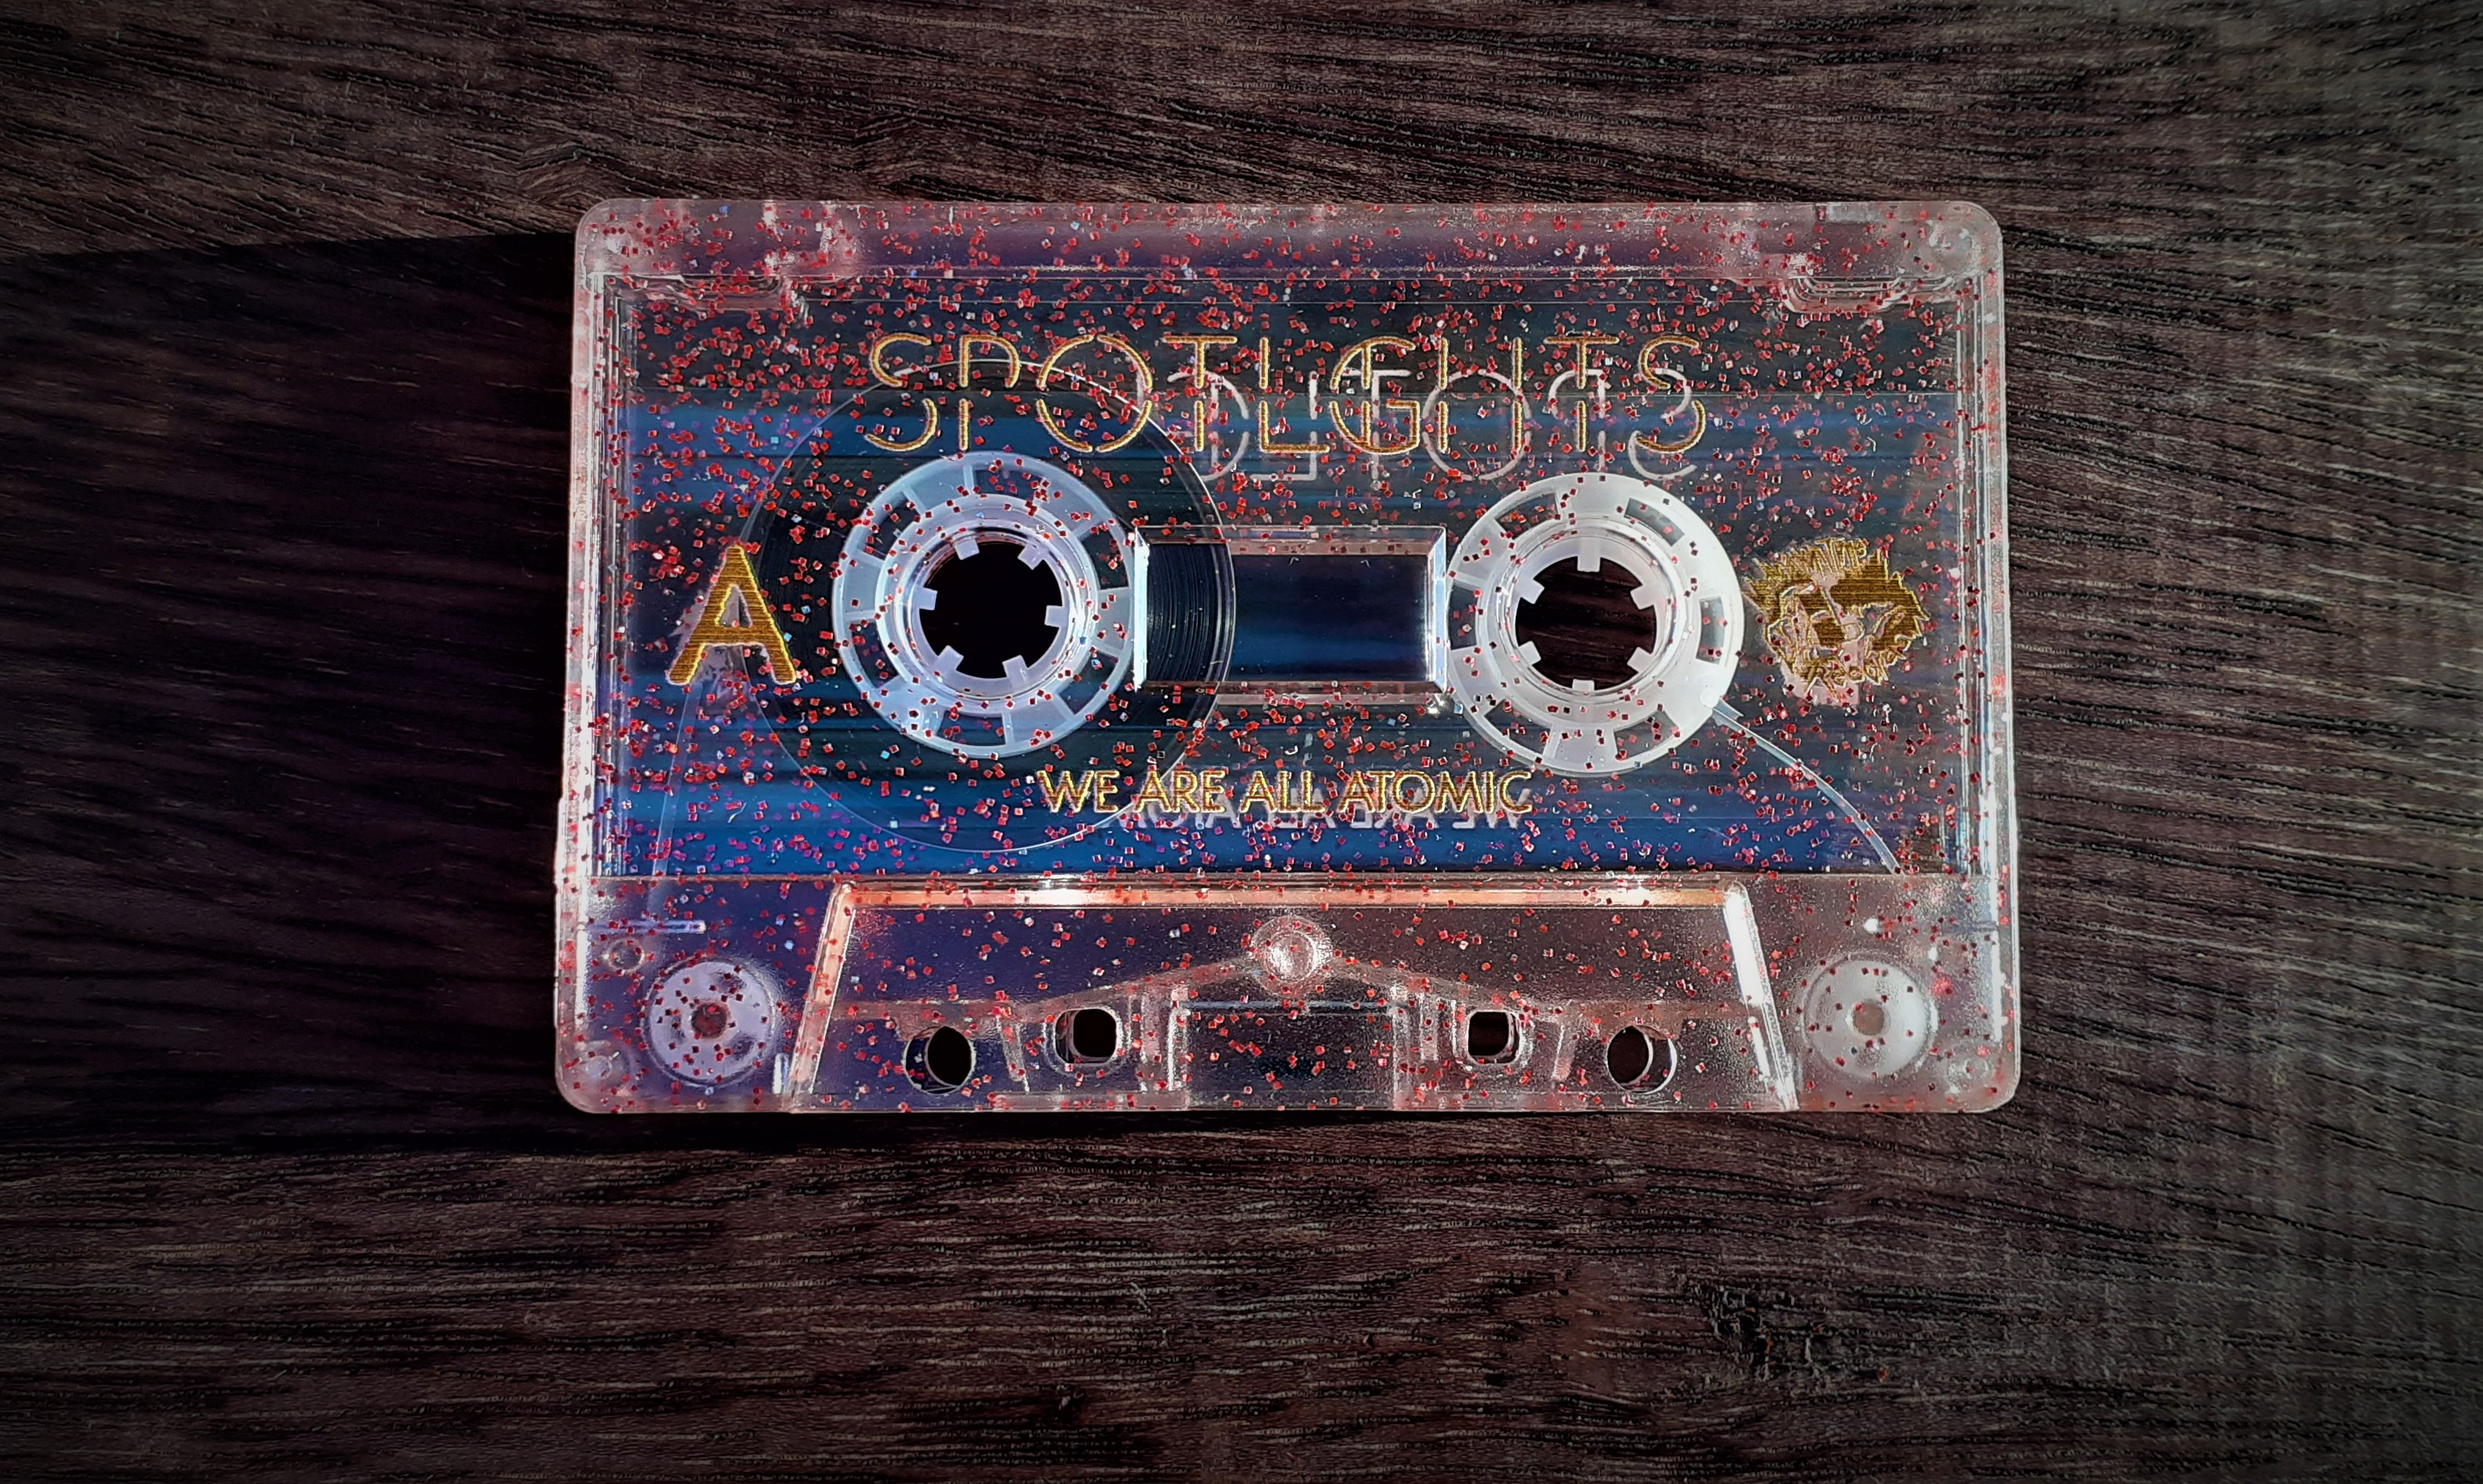 Spotlights - We Are All Atomic - Limited Cassette Edition